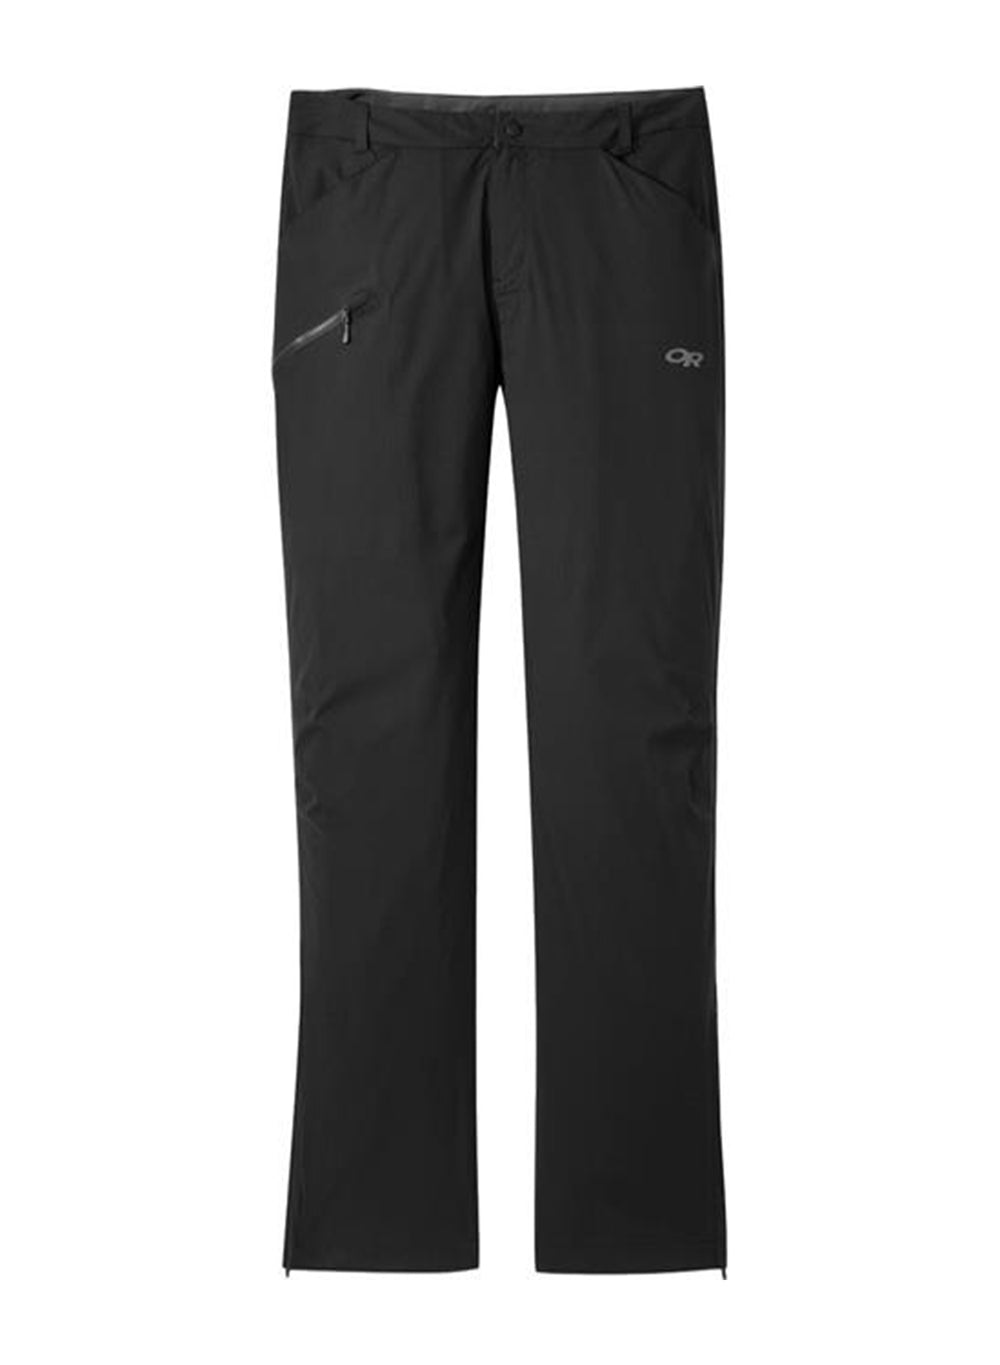 Outdoor Research Prologue Storm Pants - Women's